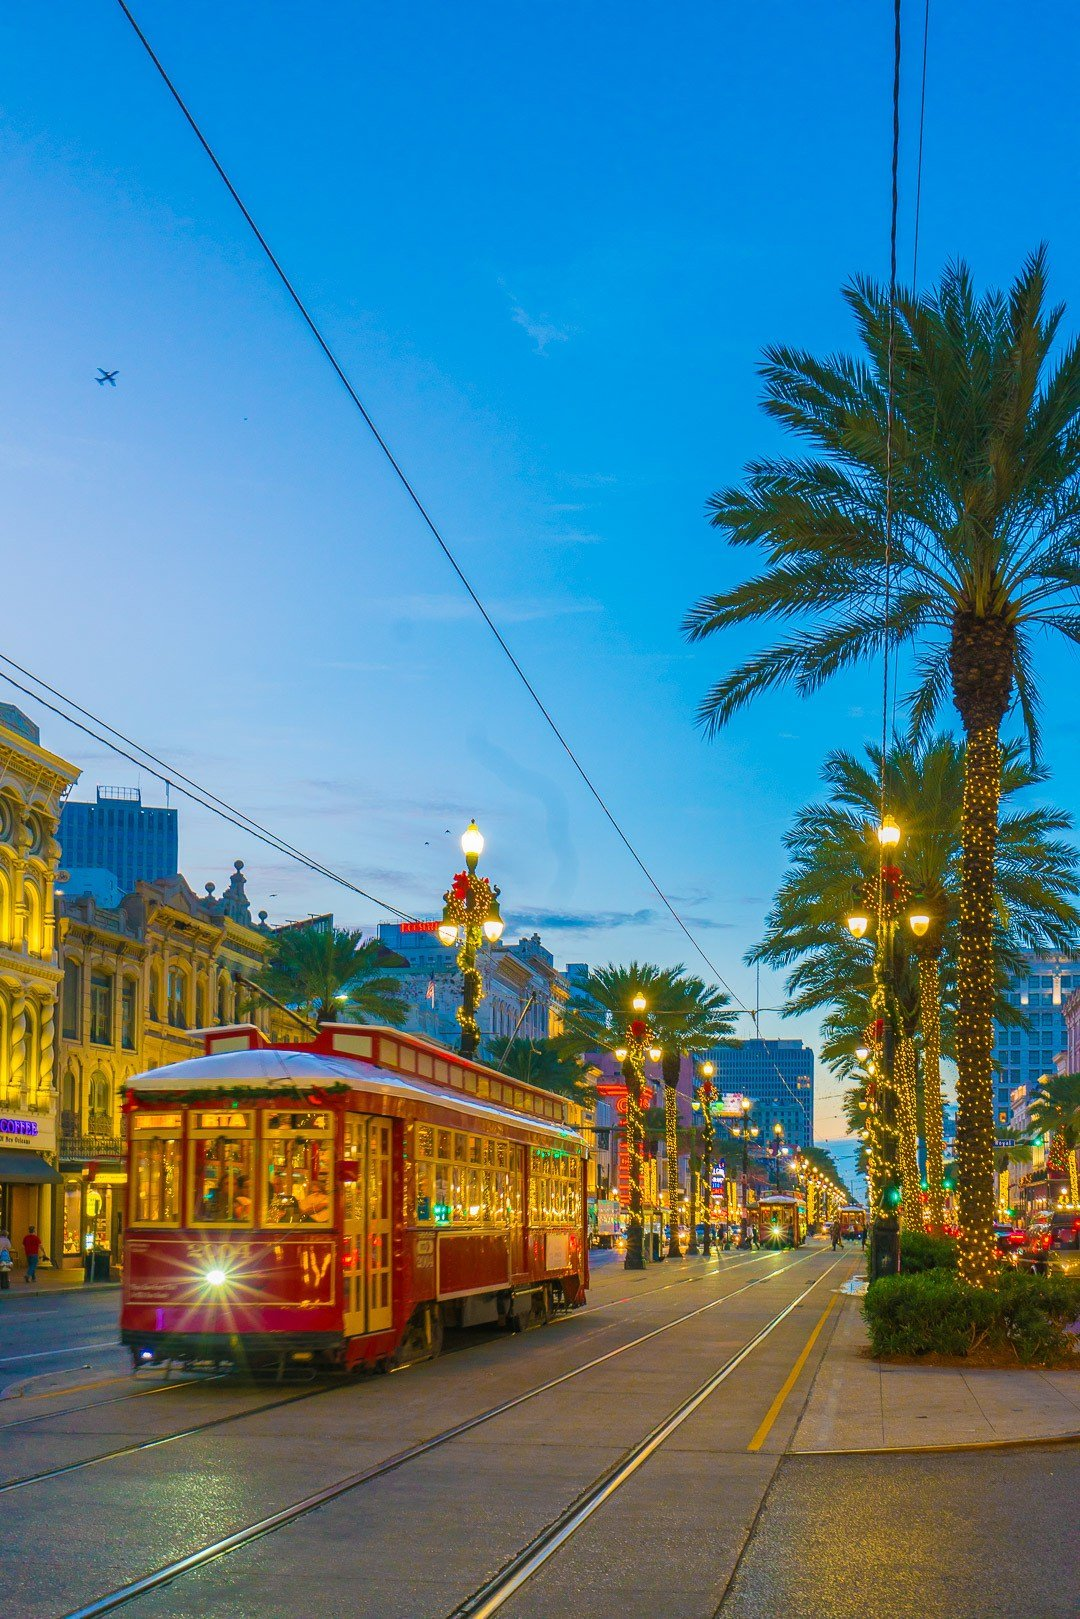 A New Orleans street car at night.